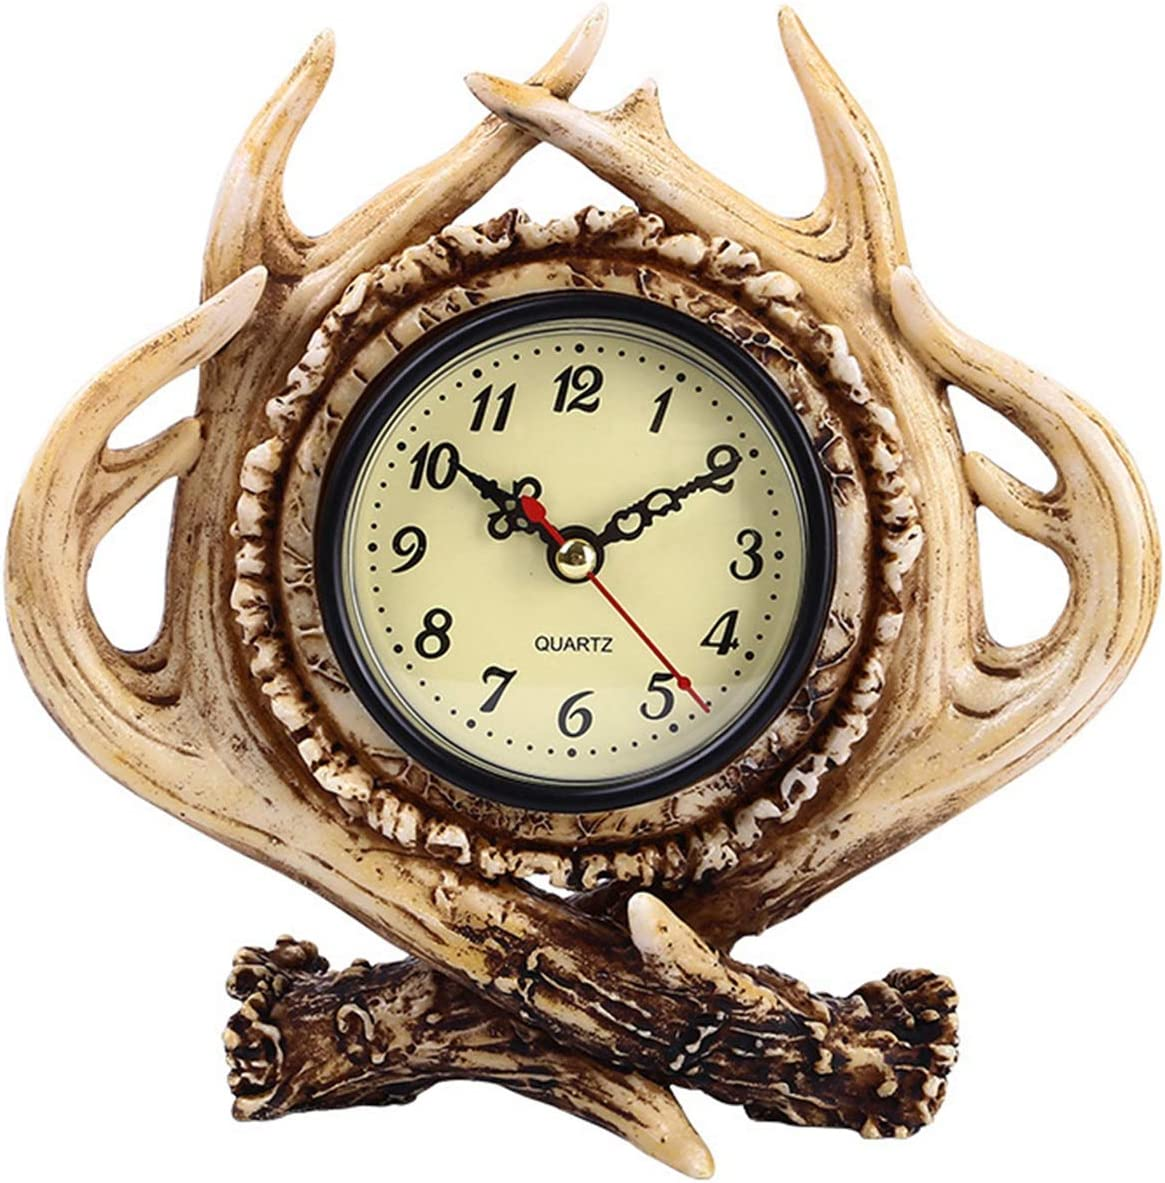 Diskary Table Decoration Antlers Desk Clock, Vintage Mantel Clock Non Ticking Quartz Clock, Decoration for Home,Office,Living Room,Bedroom,Bar - Gift for Friend,Colleague,Boss,Father,Mother